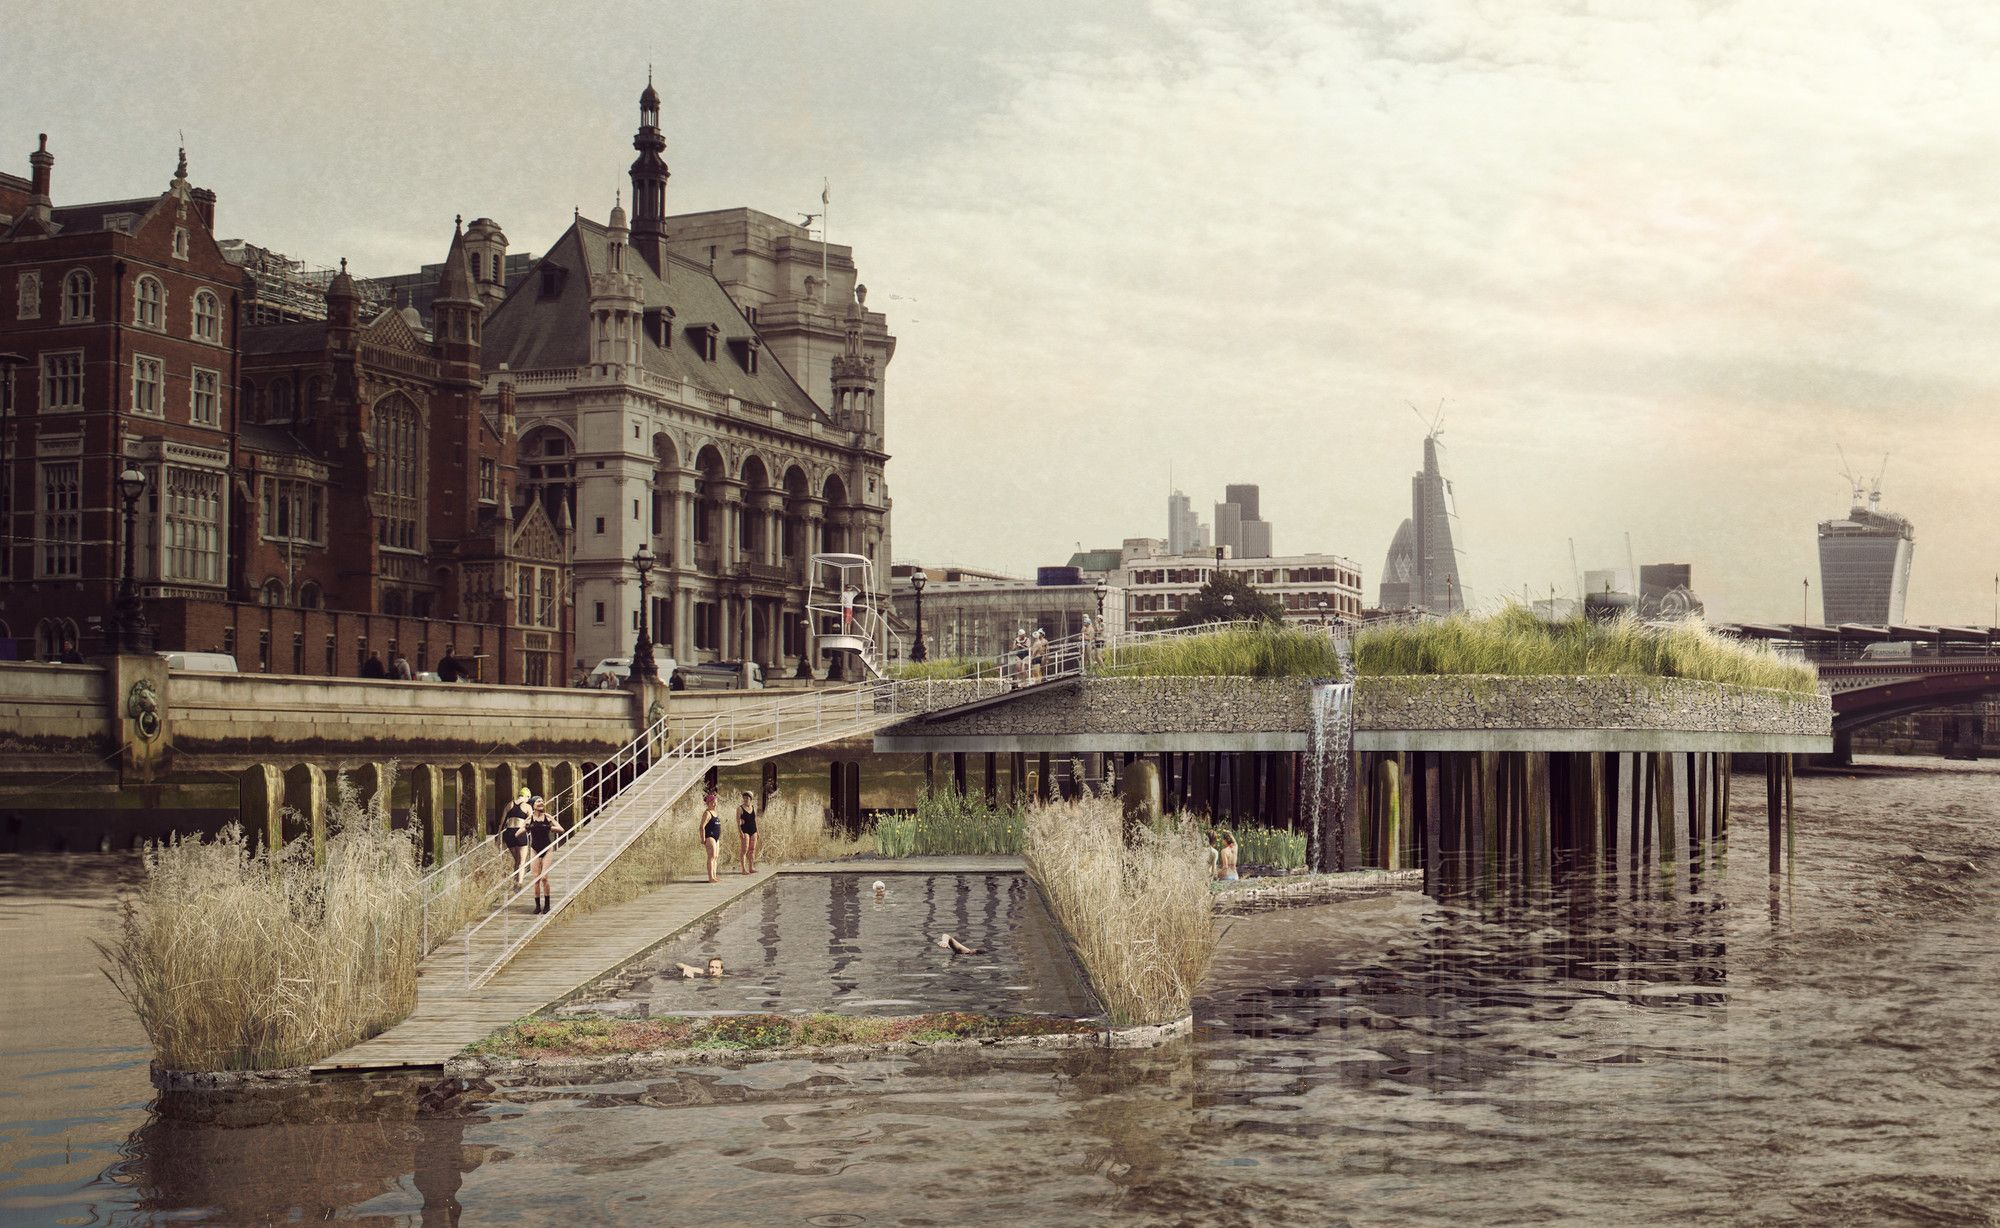 Gallery - Studio Octopi Begins Crowdfunding Campaign For A Lido On London's River Thames - 5